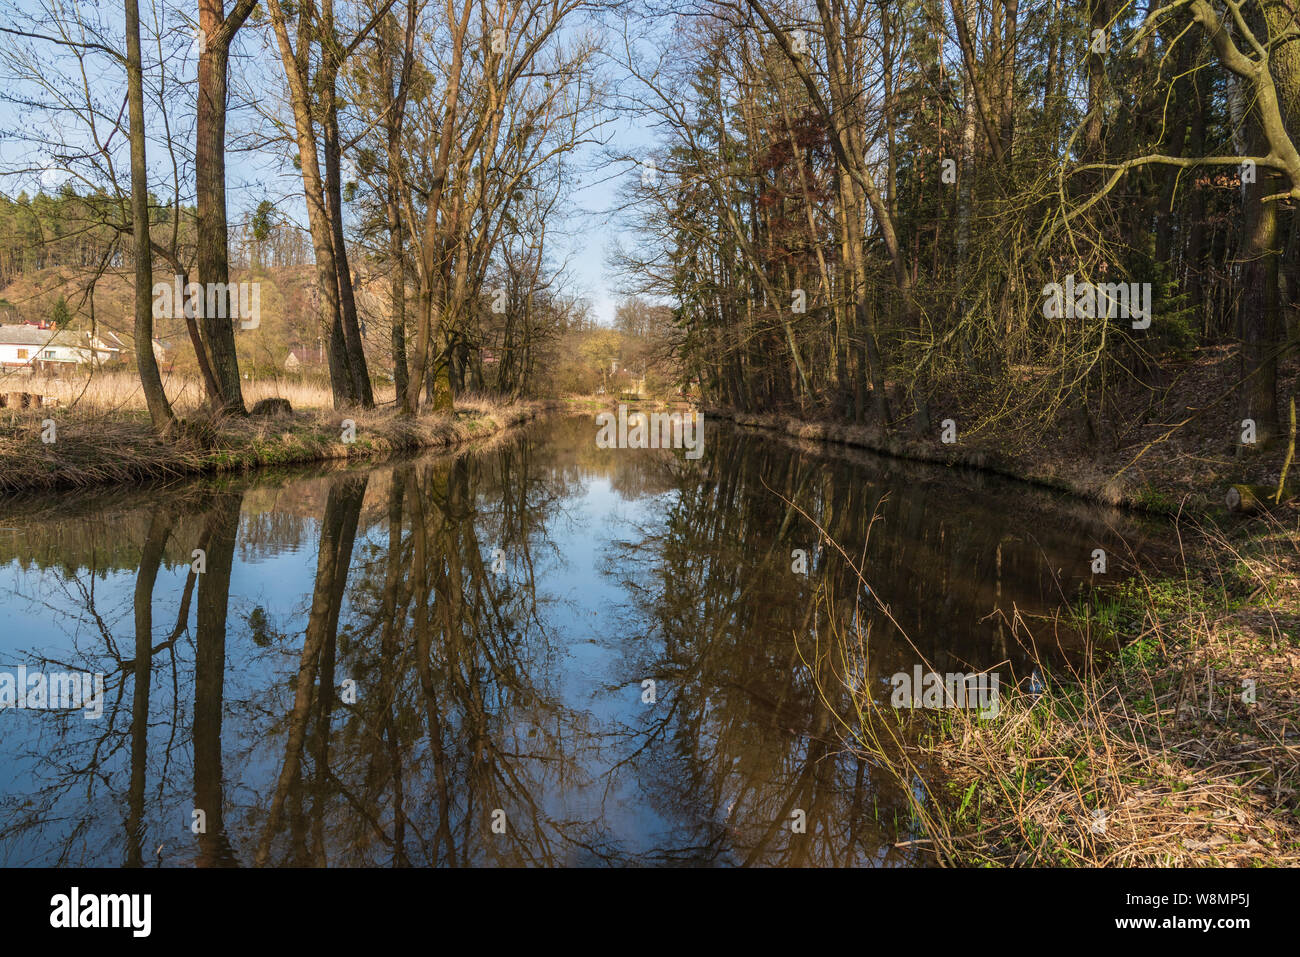 Trebuvka river with trees reflected on water ground near Lostice town in Czech republic during beautiful early spring day Stock Photo